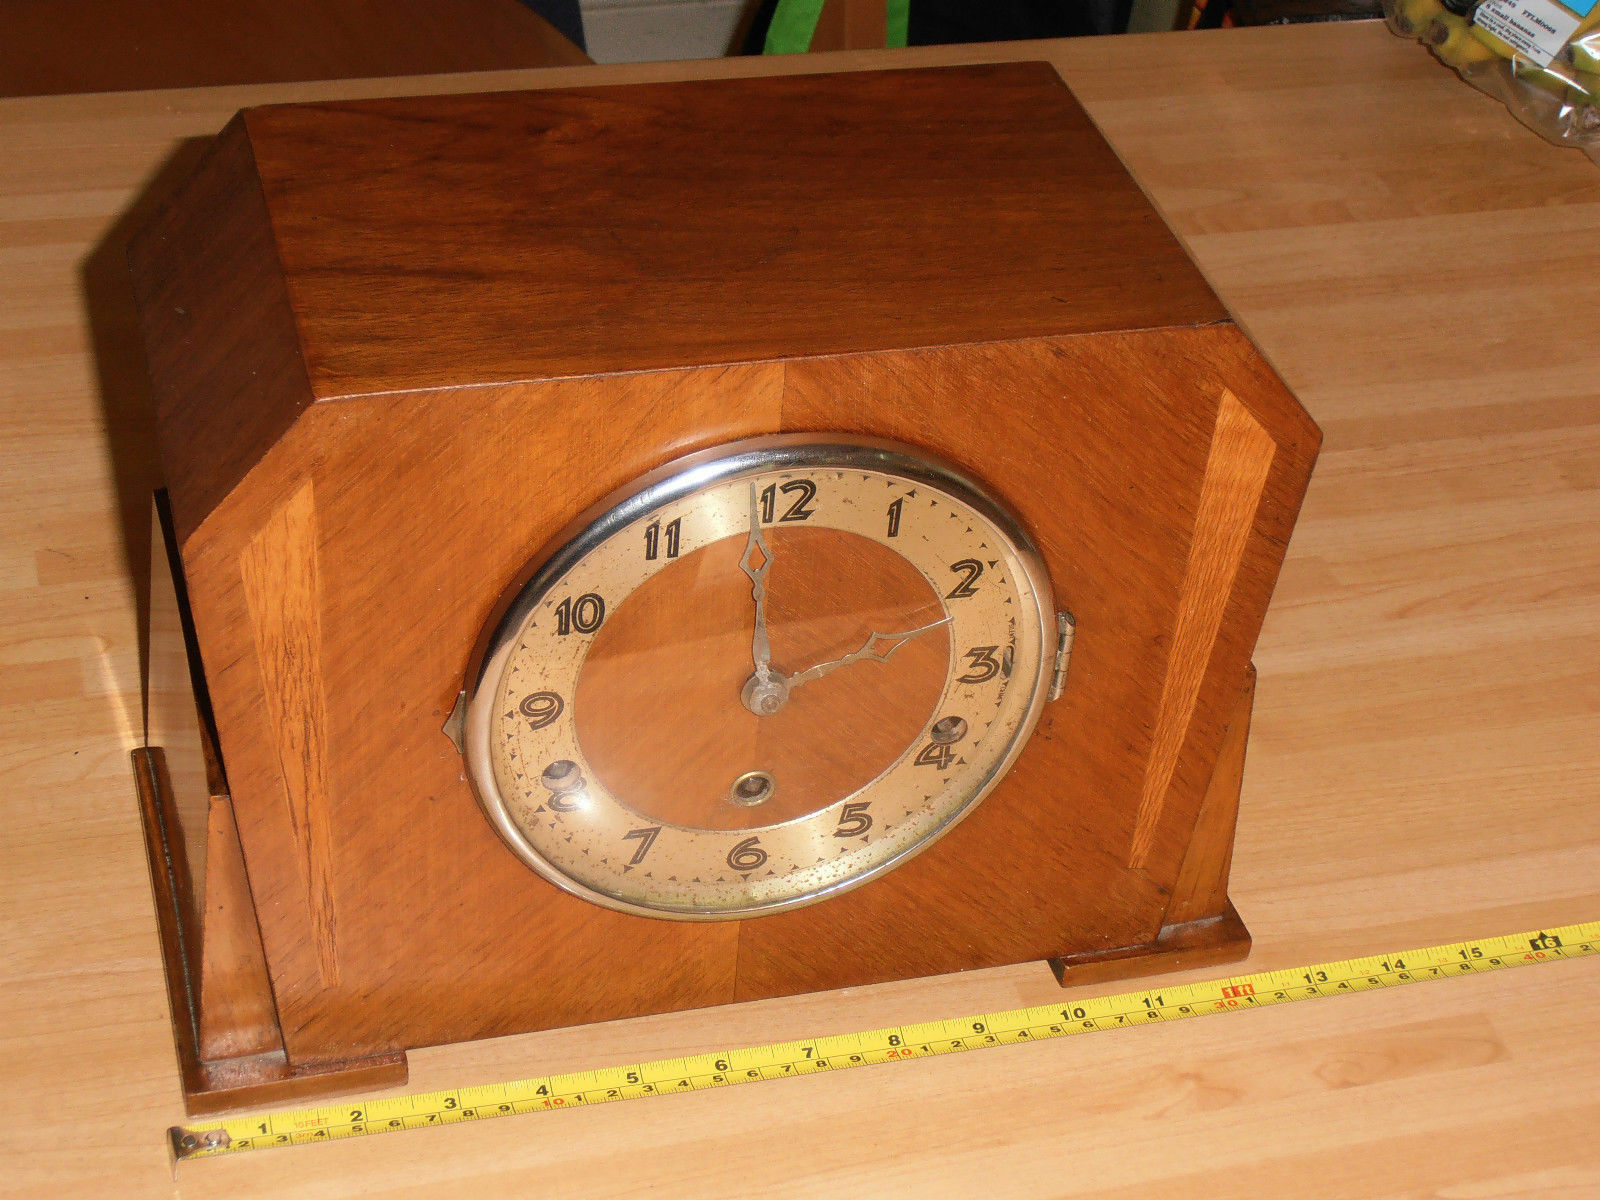 Art Deco Highly Polished Wooden Mantel Clock with Westminster chime